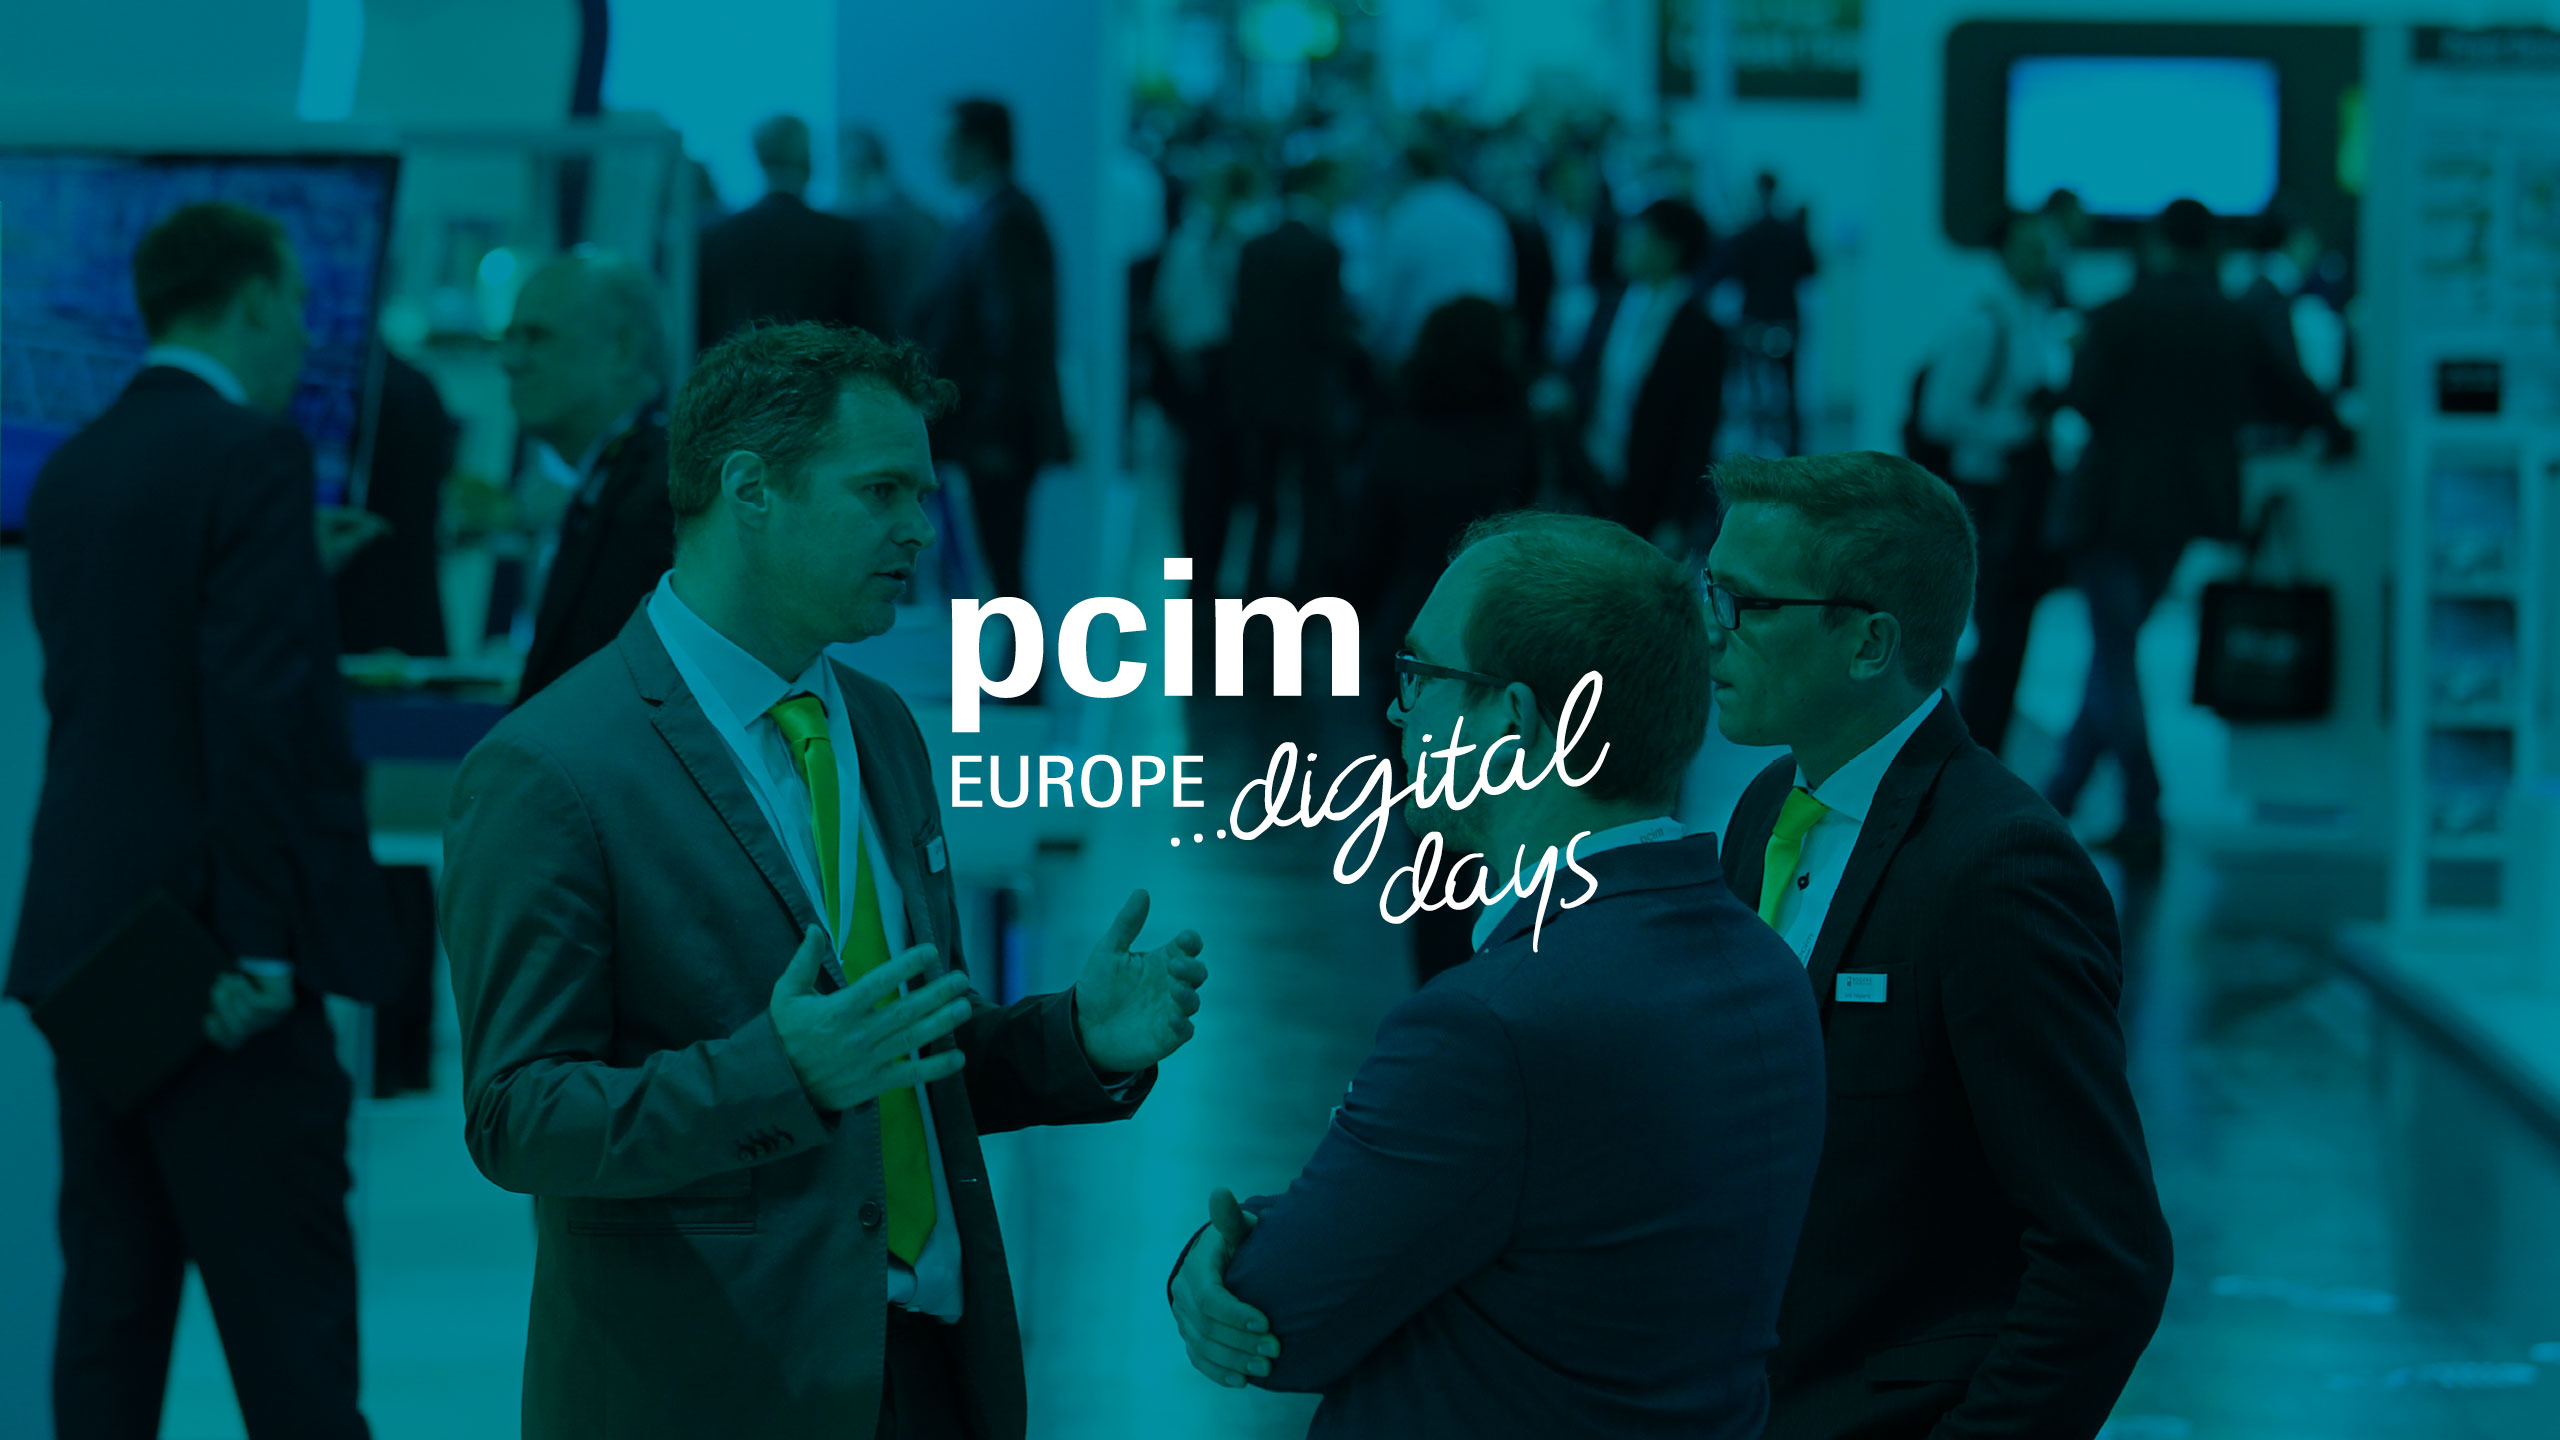 PCIM Europe to be held digitally only from 3 – 7 May 2021